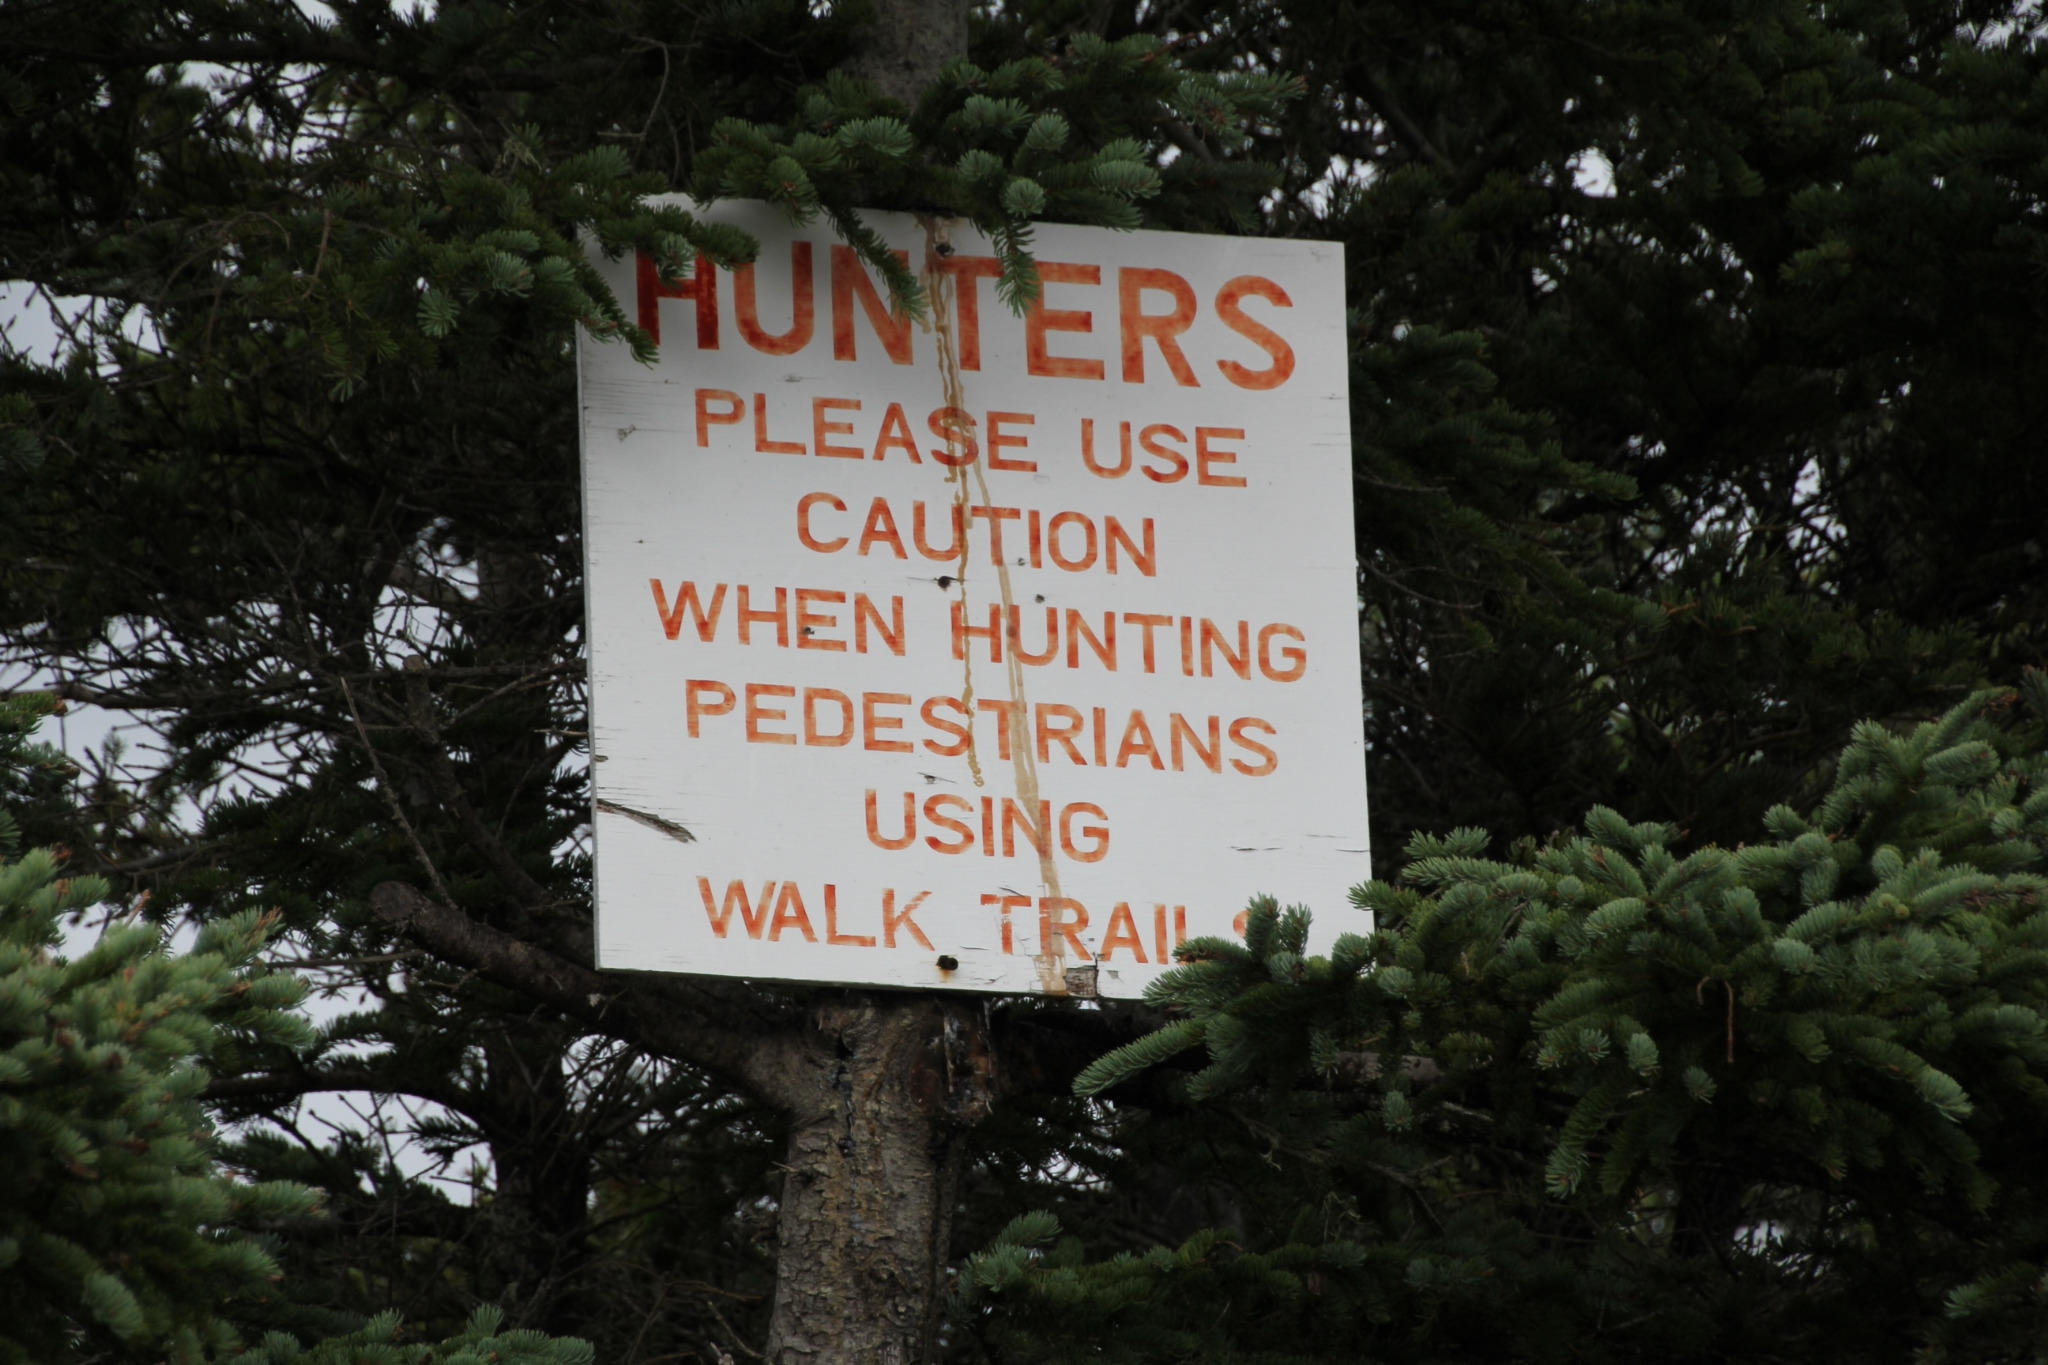 Hunters please use caution when hunting pedestrians